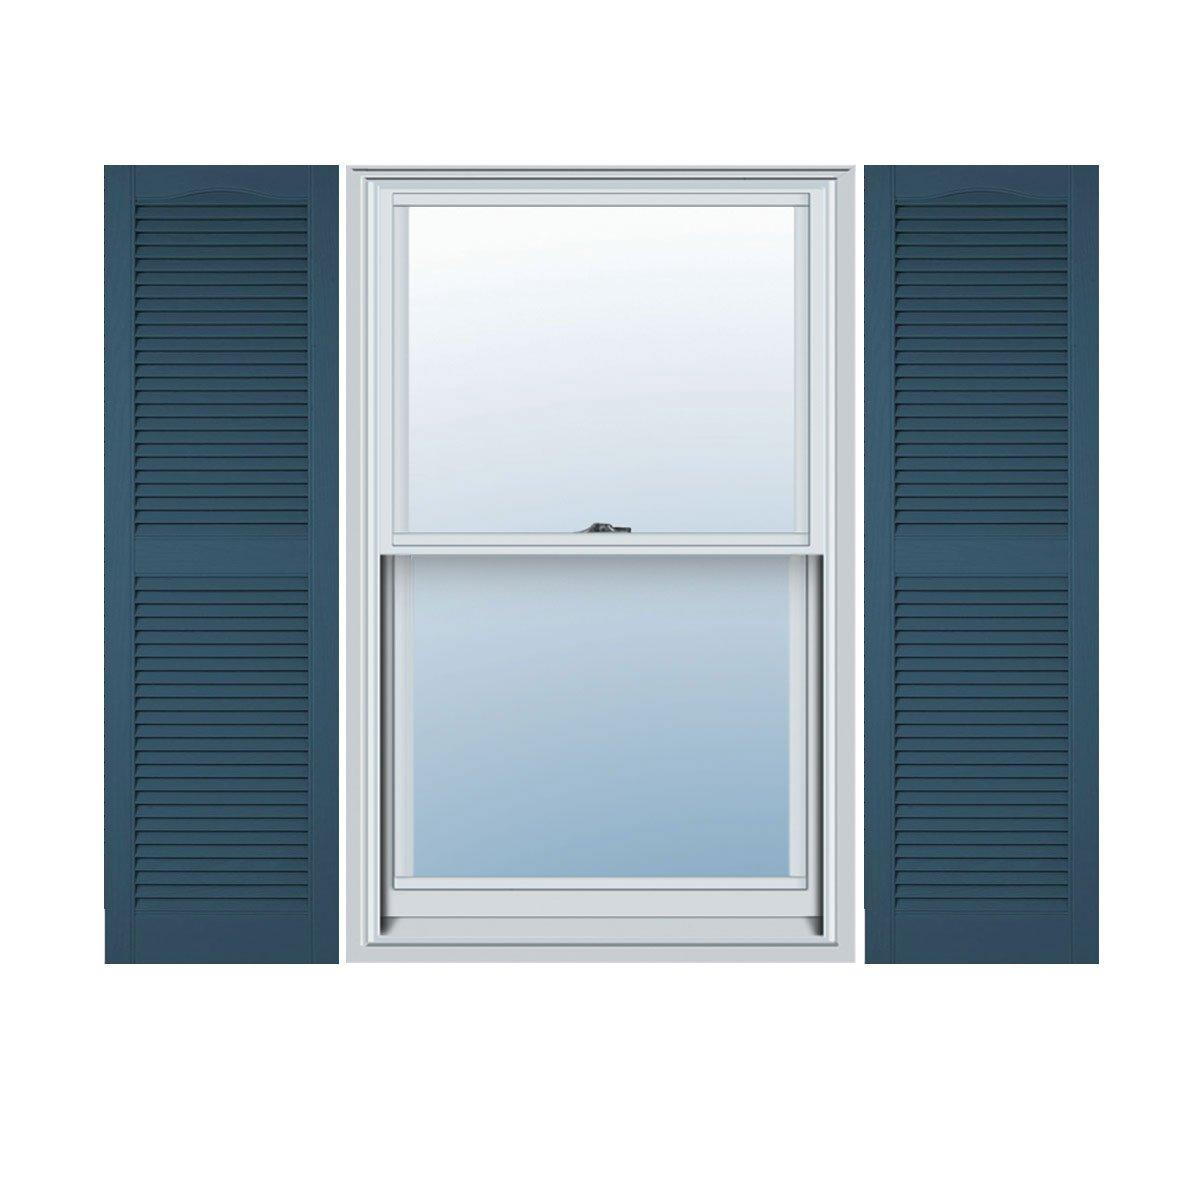 Ekena Millwork LL1S12X04300CB Lifetime Vinyl, Standard Cathedral Top Center Mullion, Open Louver Shutters, w/Installation Shutter-Lok's & Matching Screws (Per Pair), 12'' W x 43'' H, Classic Blue